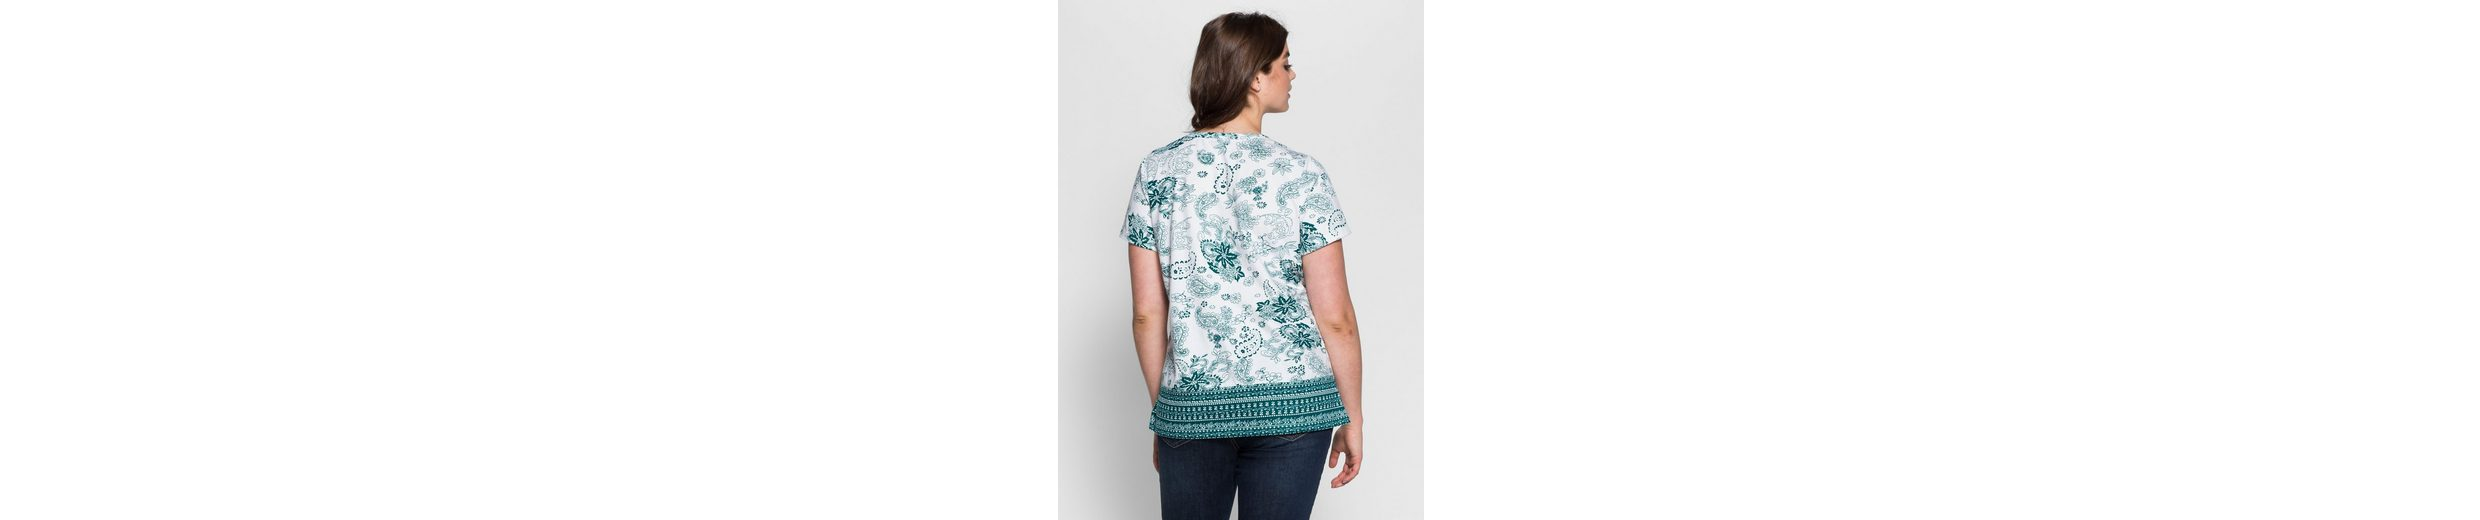 sheego Casual T-Shirt, in leichter A-Form